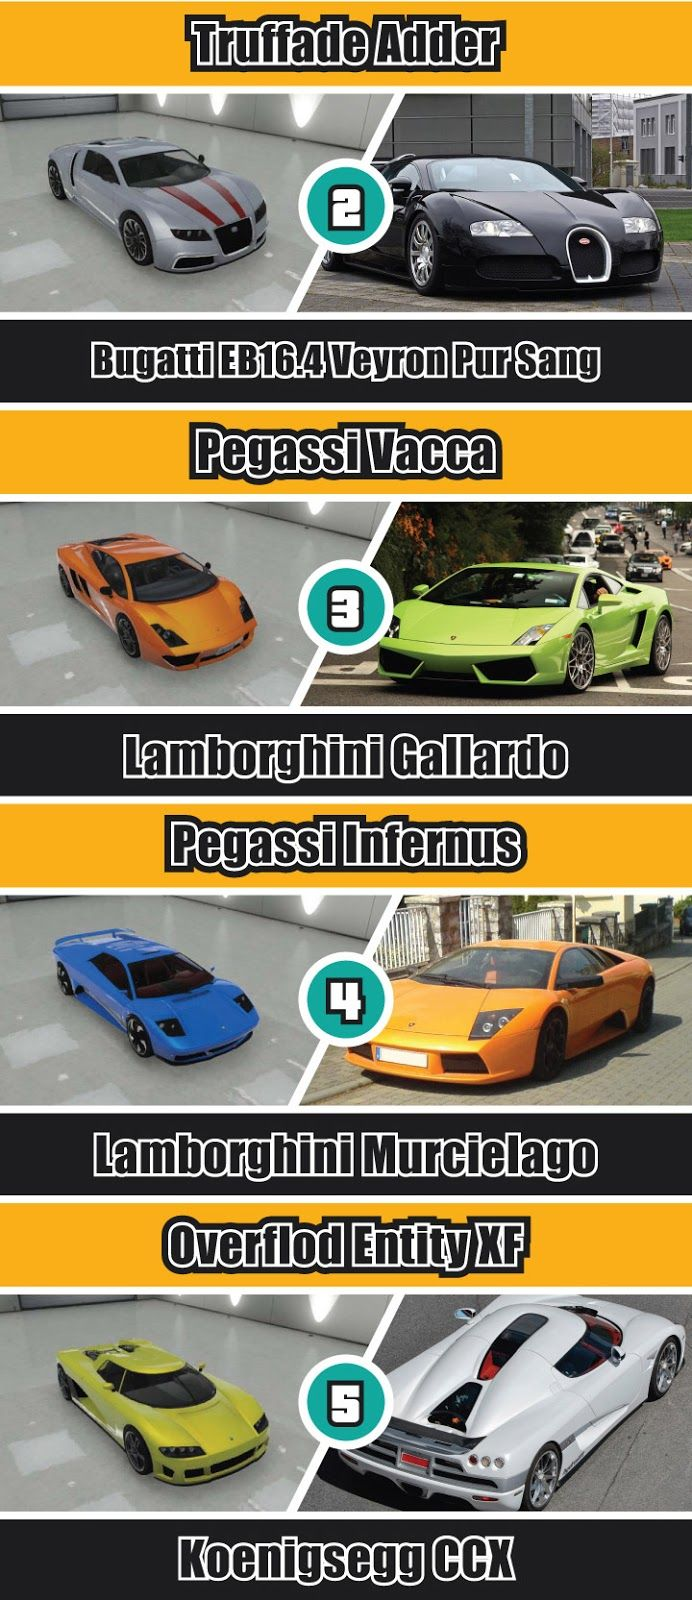 Check out 50 gta v cars and their real life counterparts in massive infographic gta v pinterest cars grand theft auto and rockstar games